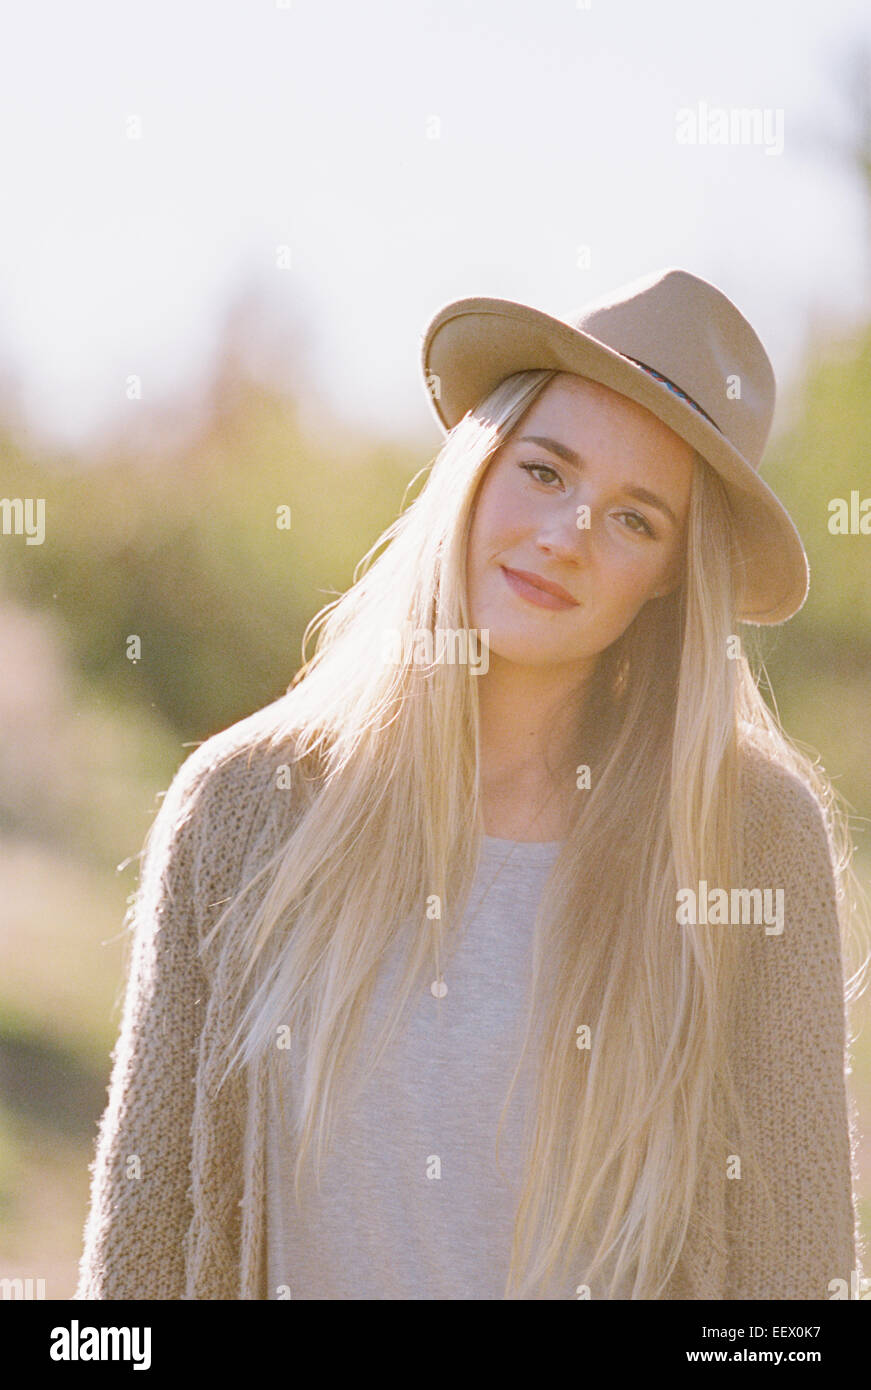 Femme avec de longs cheveux blonds, portant un chapeau. Photo Stock